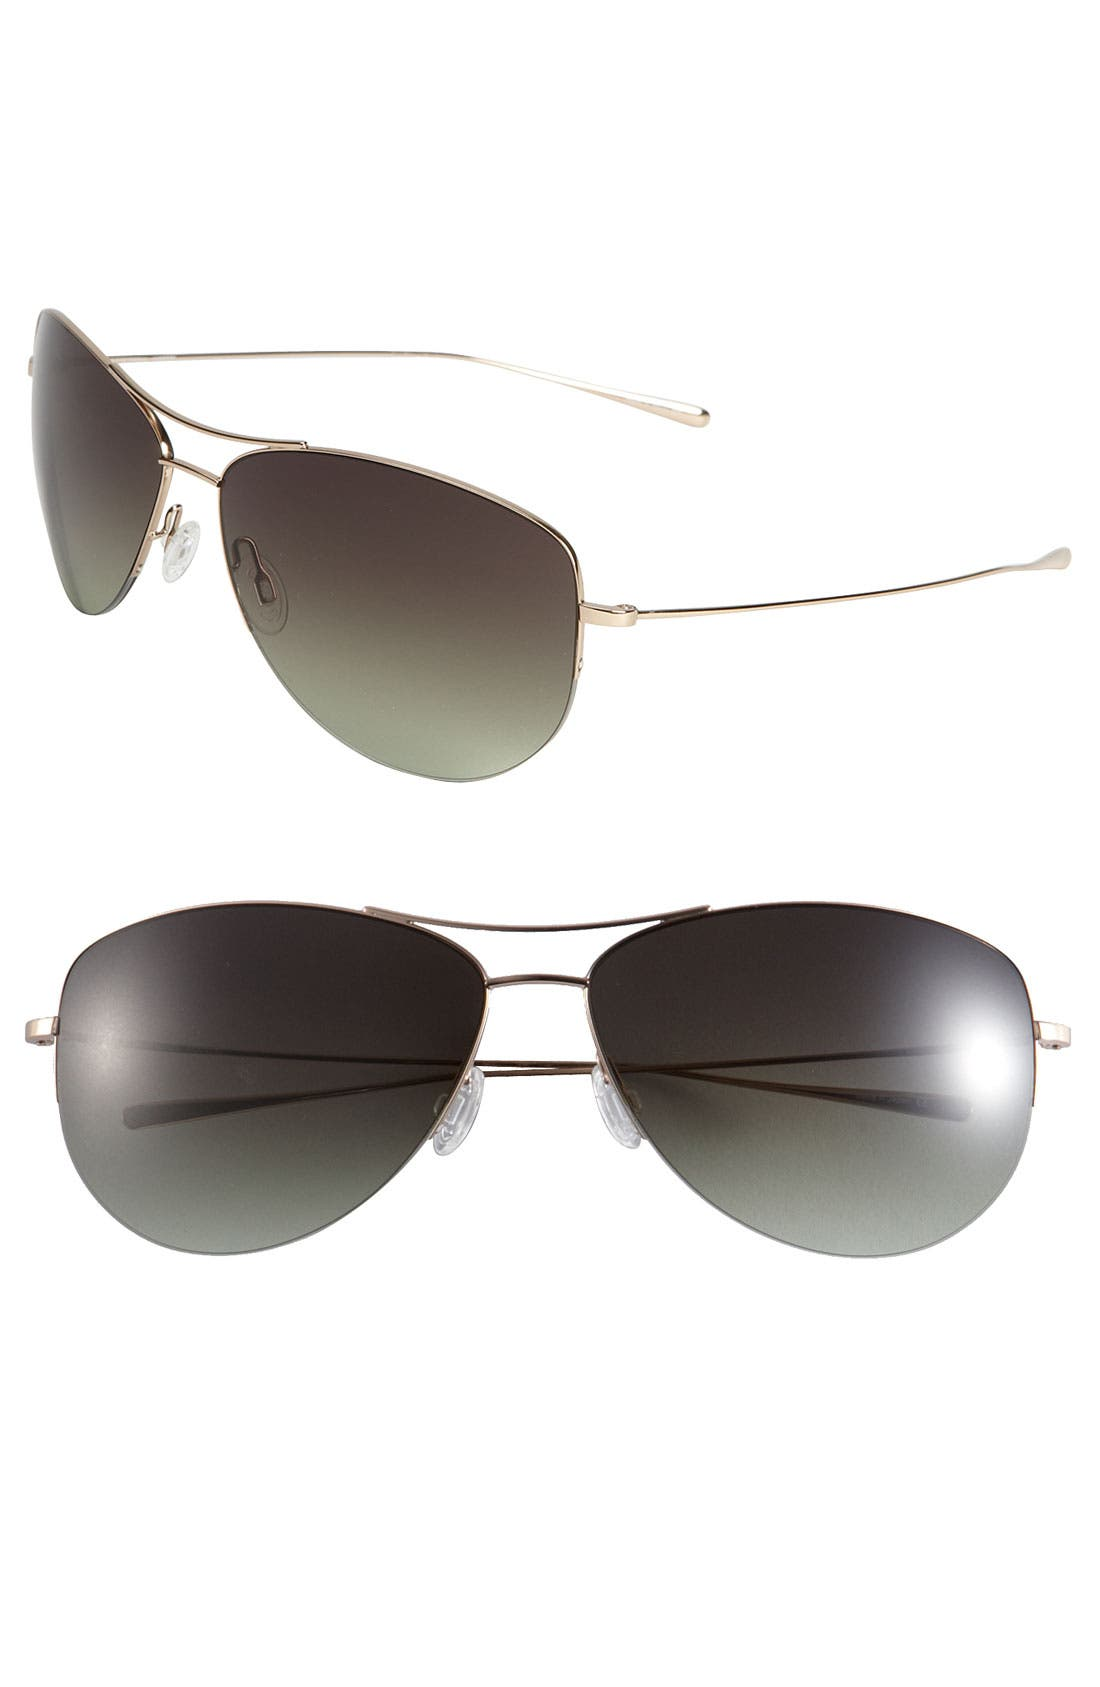 Alternate Image 1 Selected - Oliver Peoples 'Strummer' 63mm Metal Aviator Sunglasses